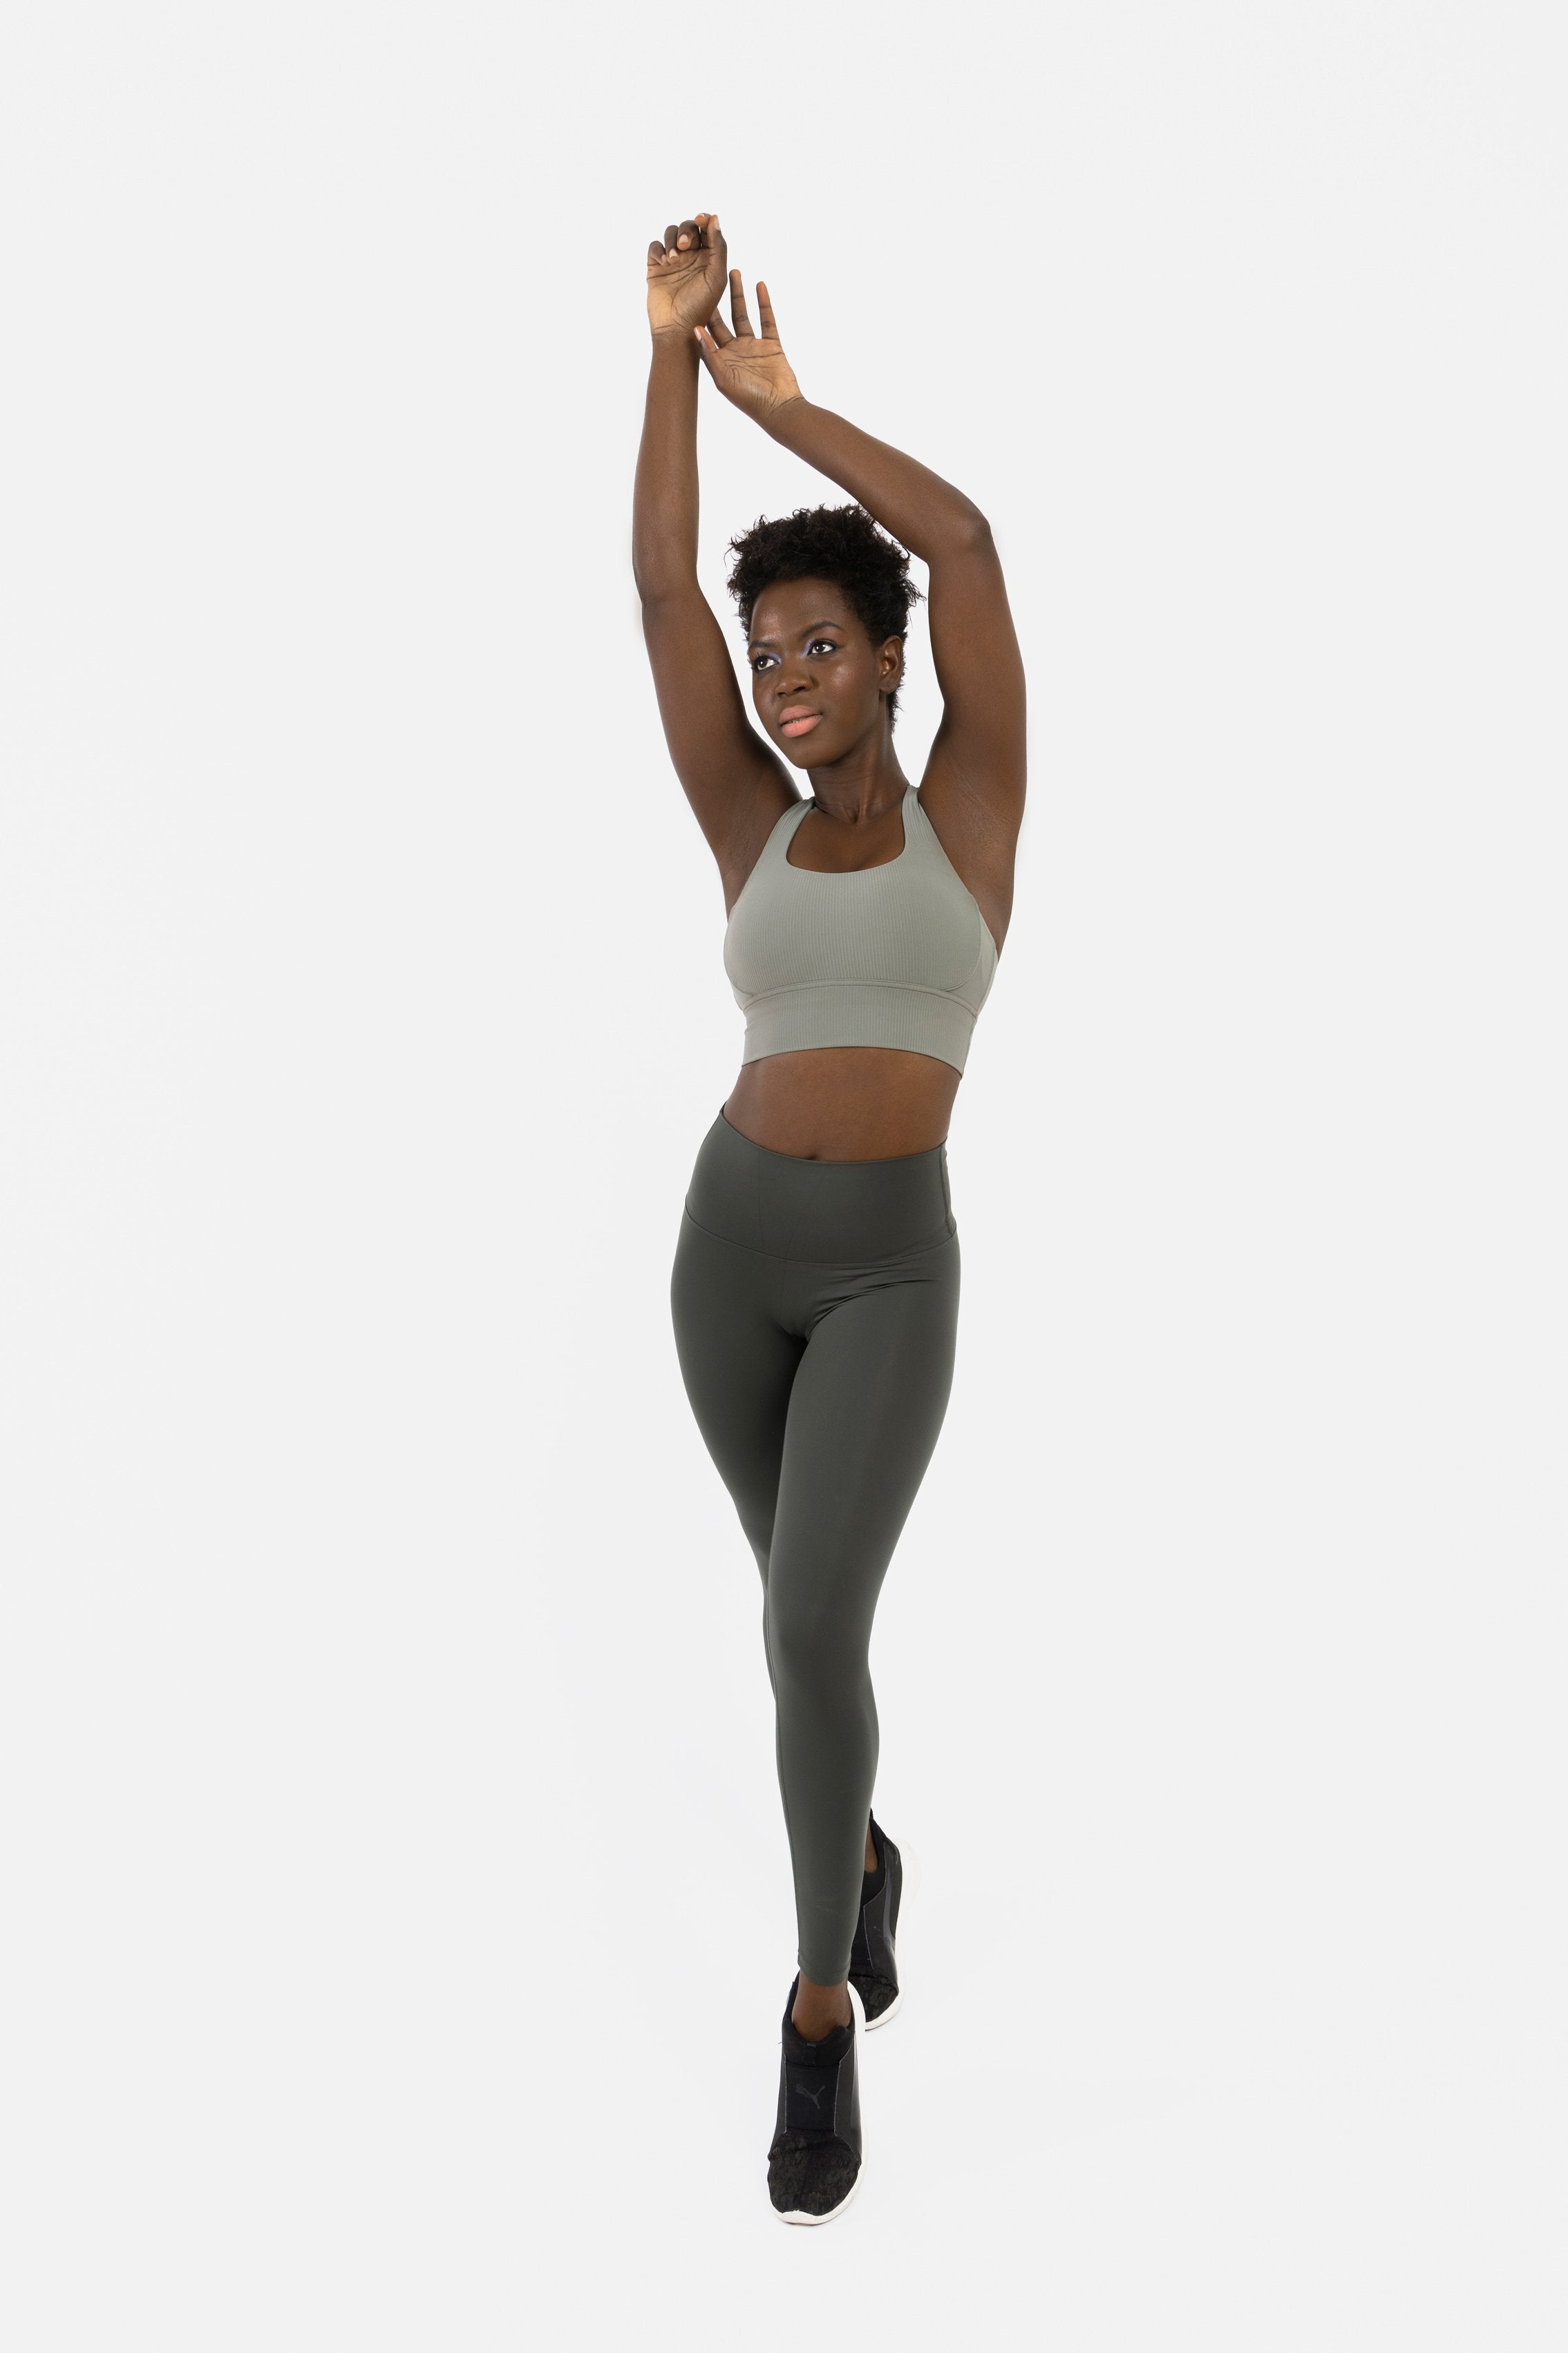 STRONG ARMY GREEN - ZIBA Activewear